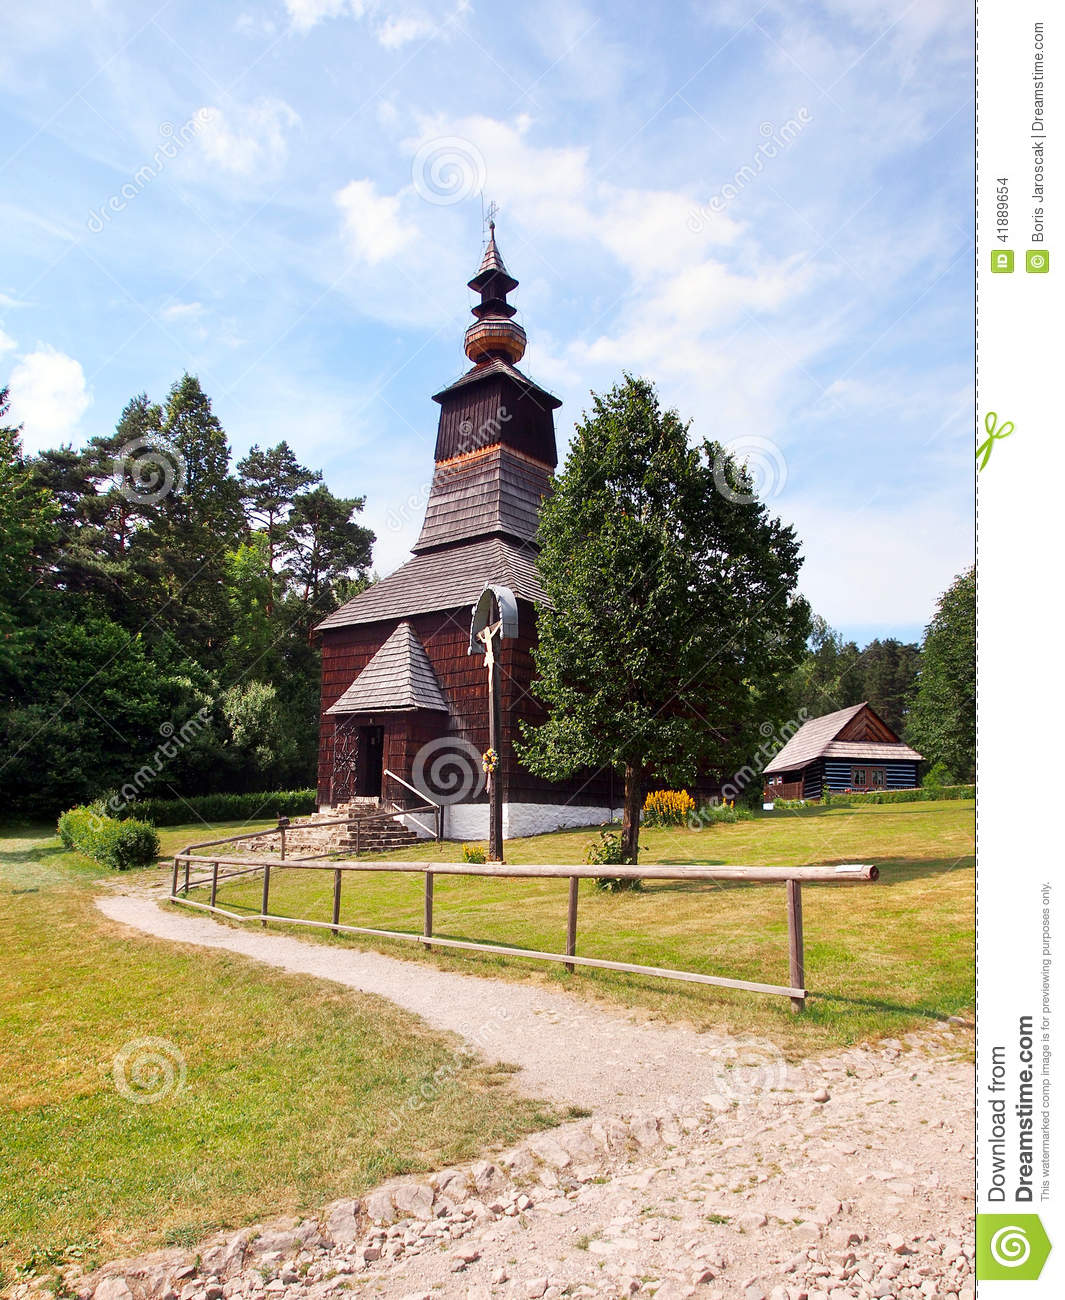 A wooden church in Stara Lubovna, Slovakia